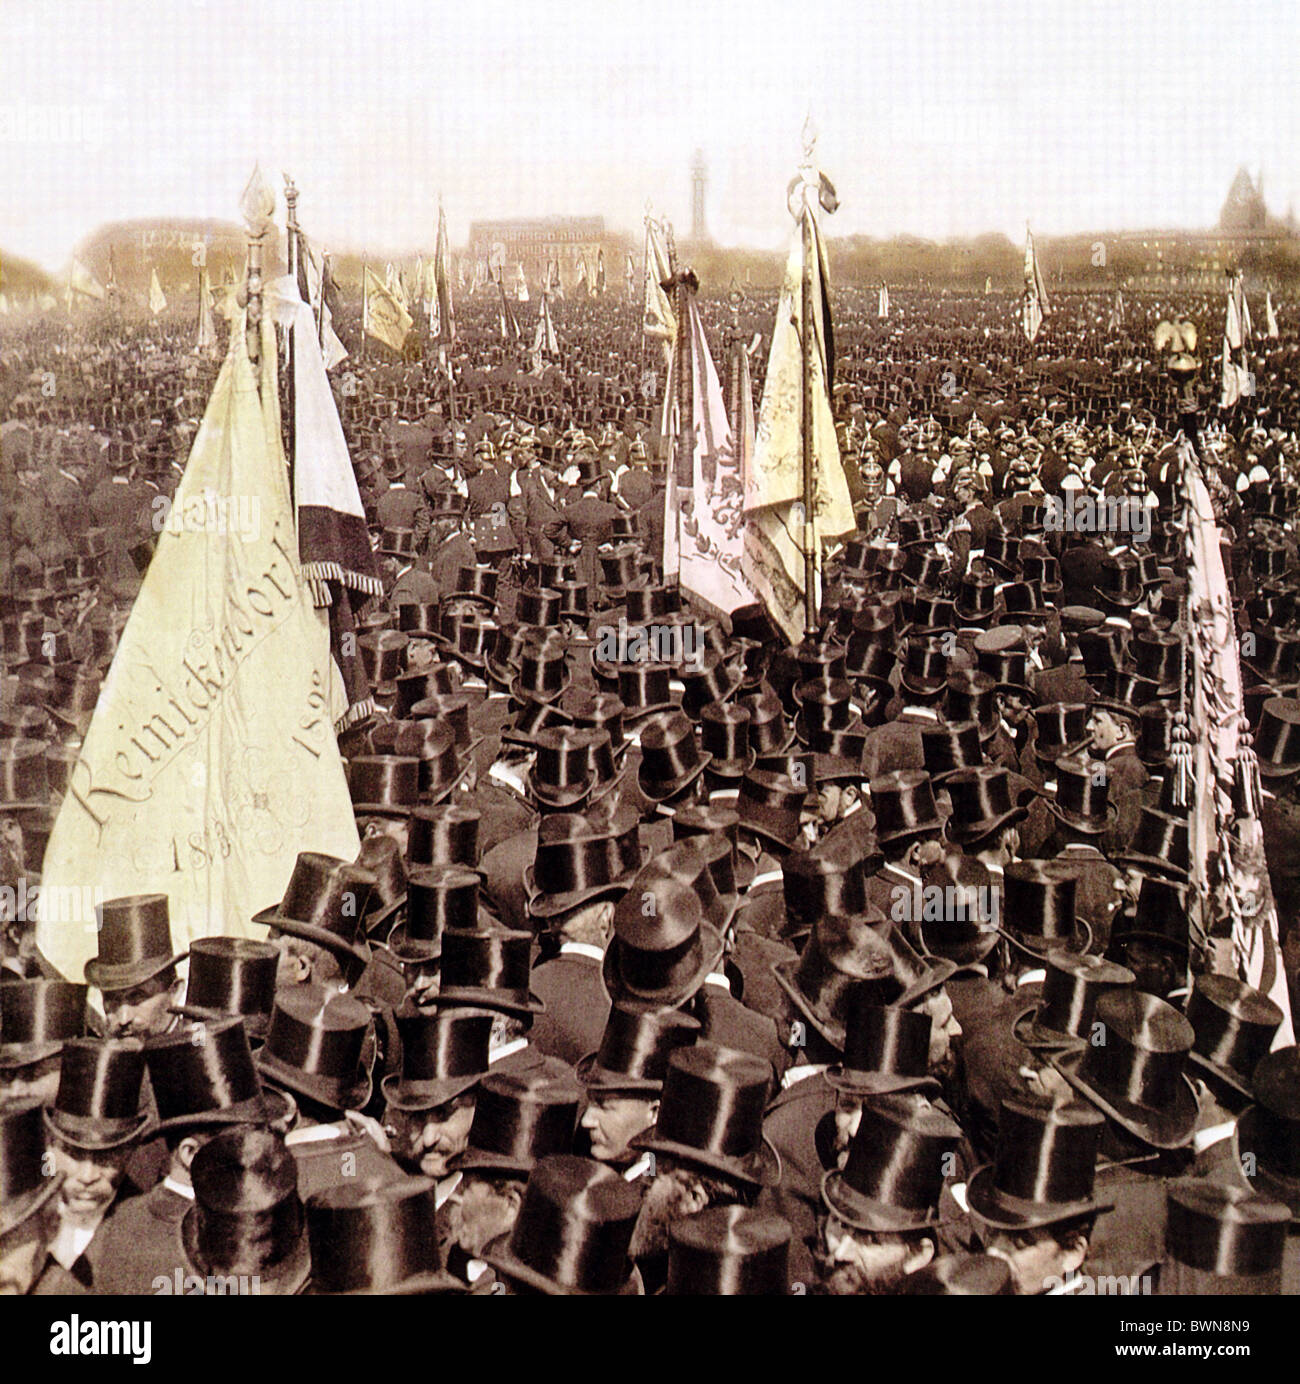 1896 Berlin Veterans League Tempelhofer Feld history historical historic hats men crowd crowds people flag - Stock Image